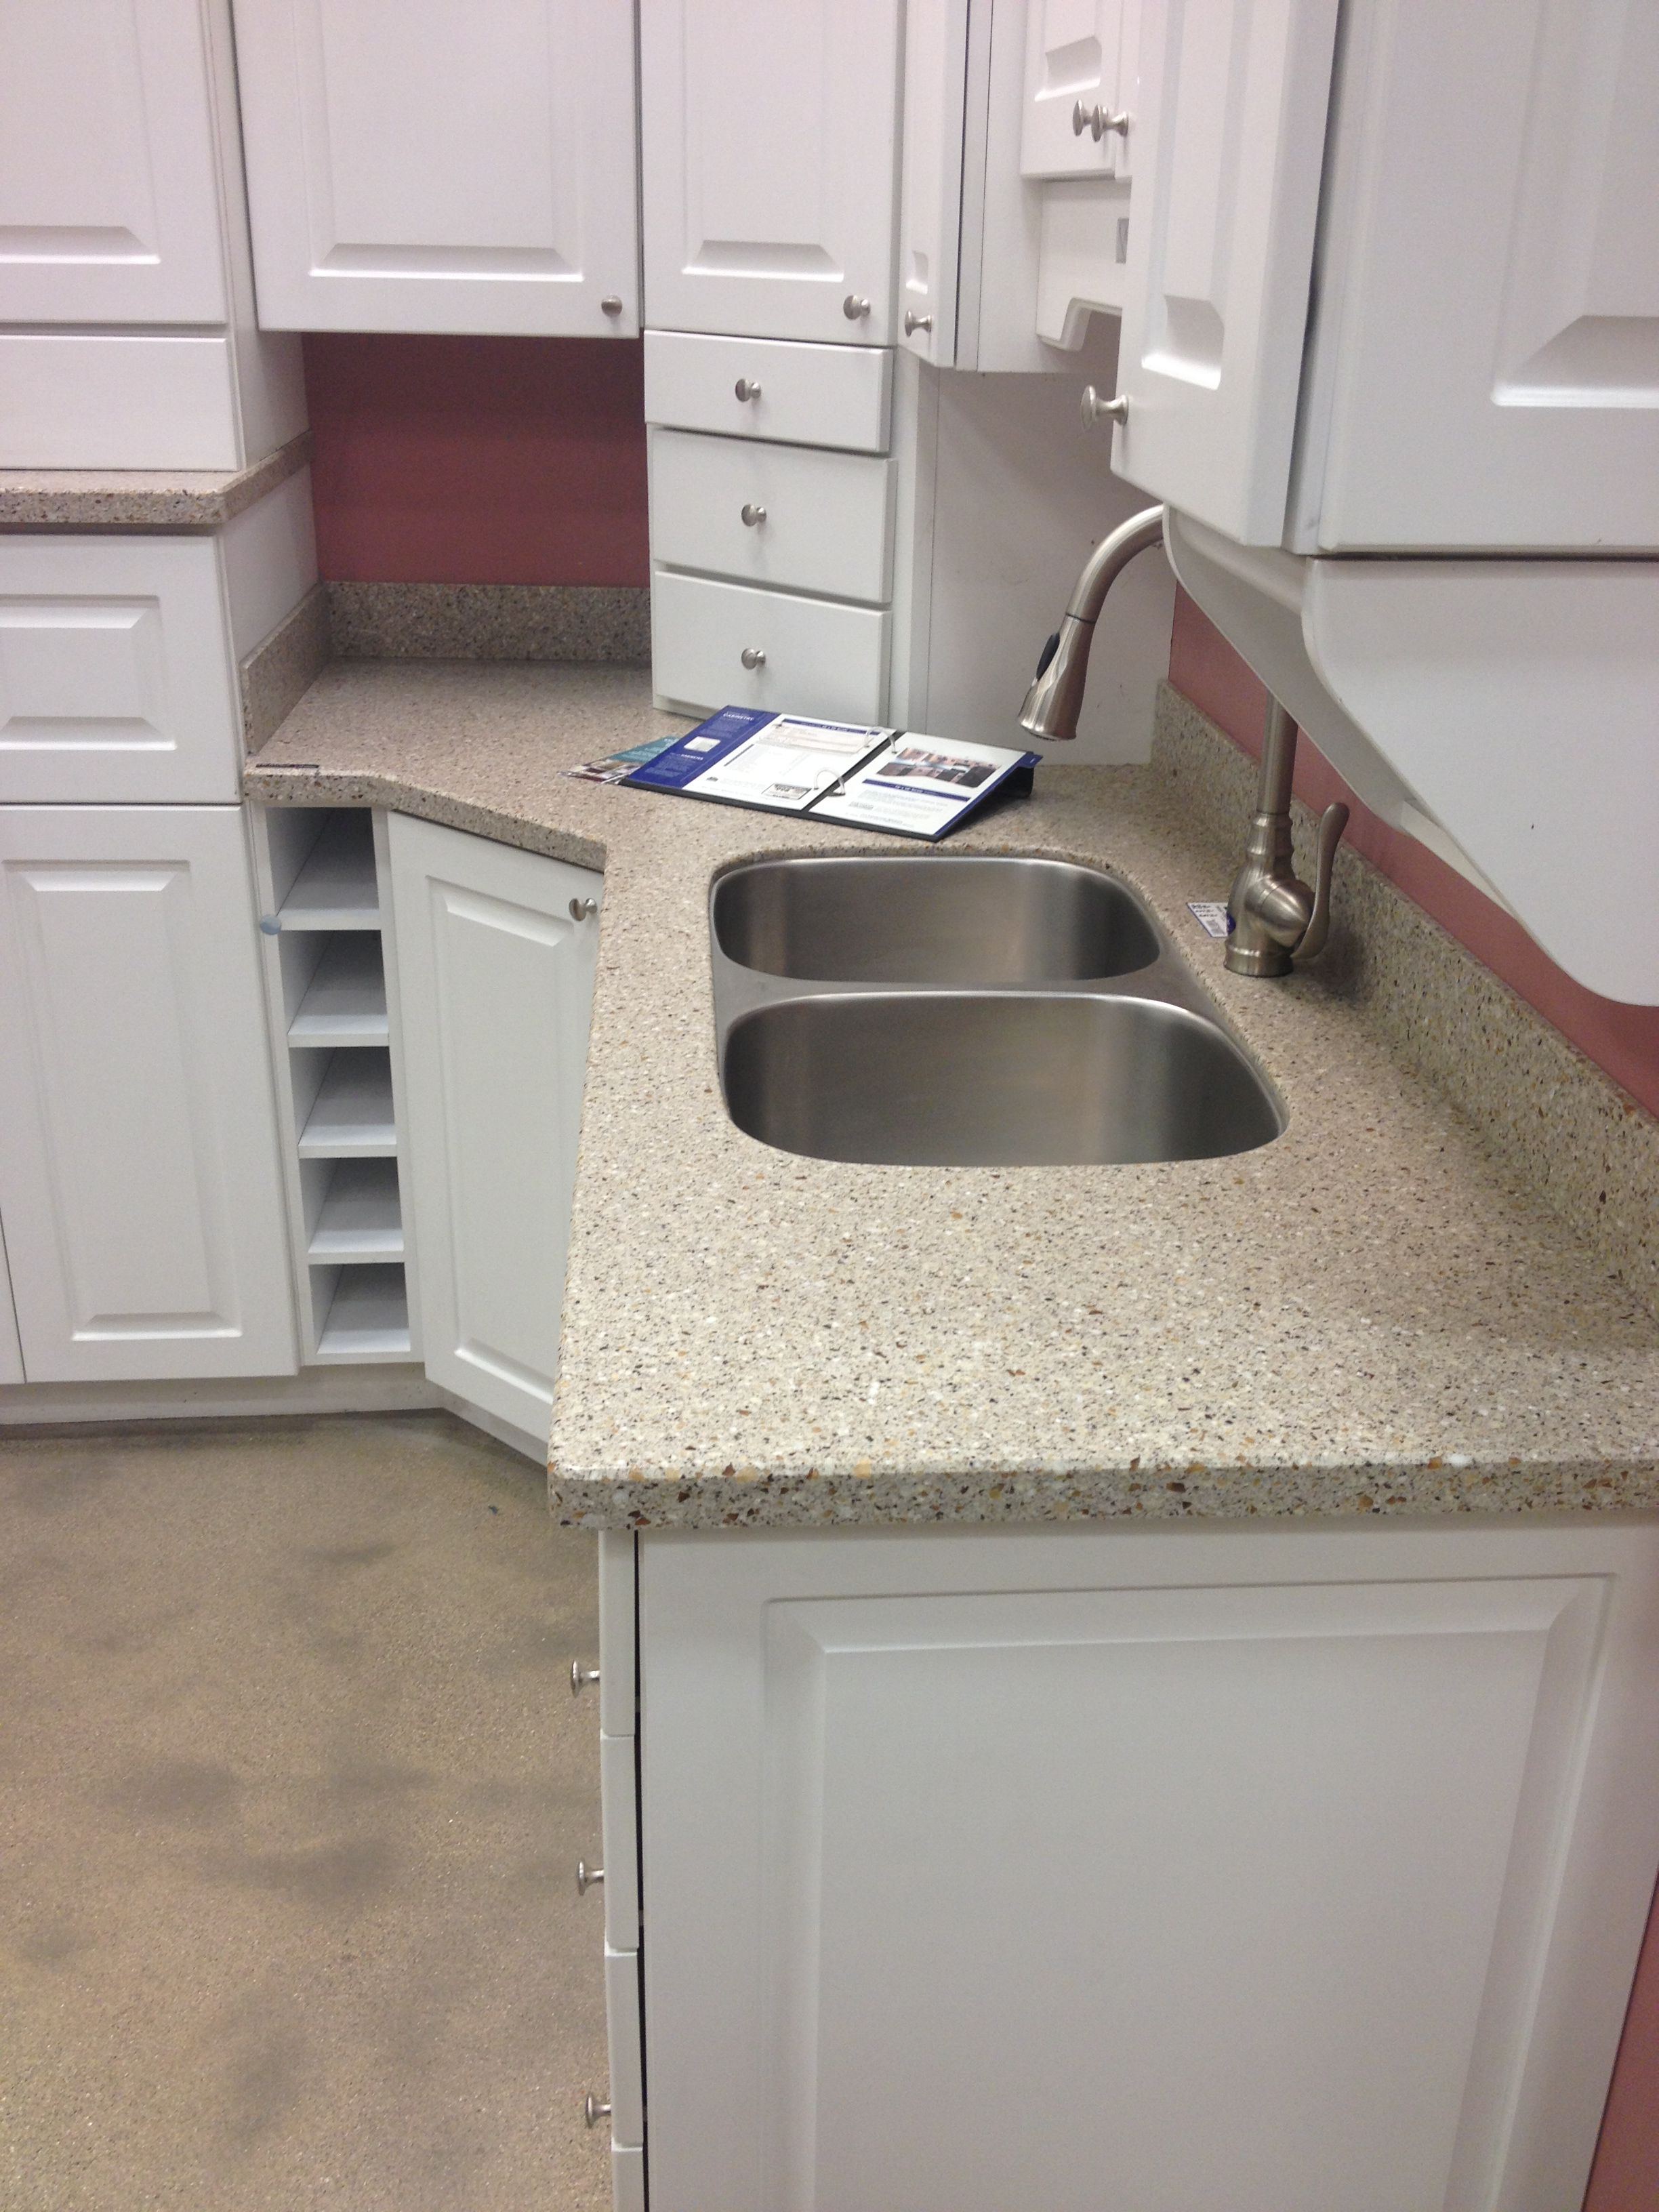 LG HiMacs countertop, Sugarloaf, at Lowes in 2019 | Home ...